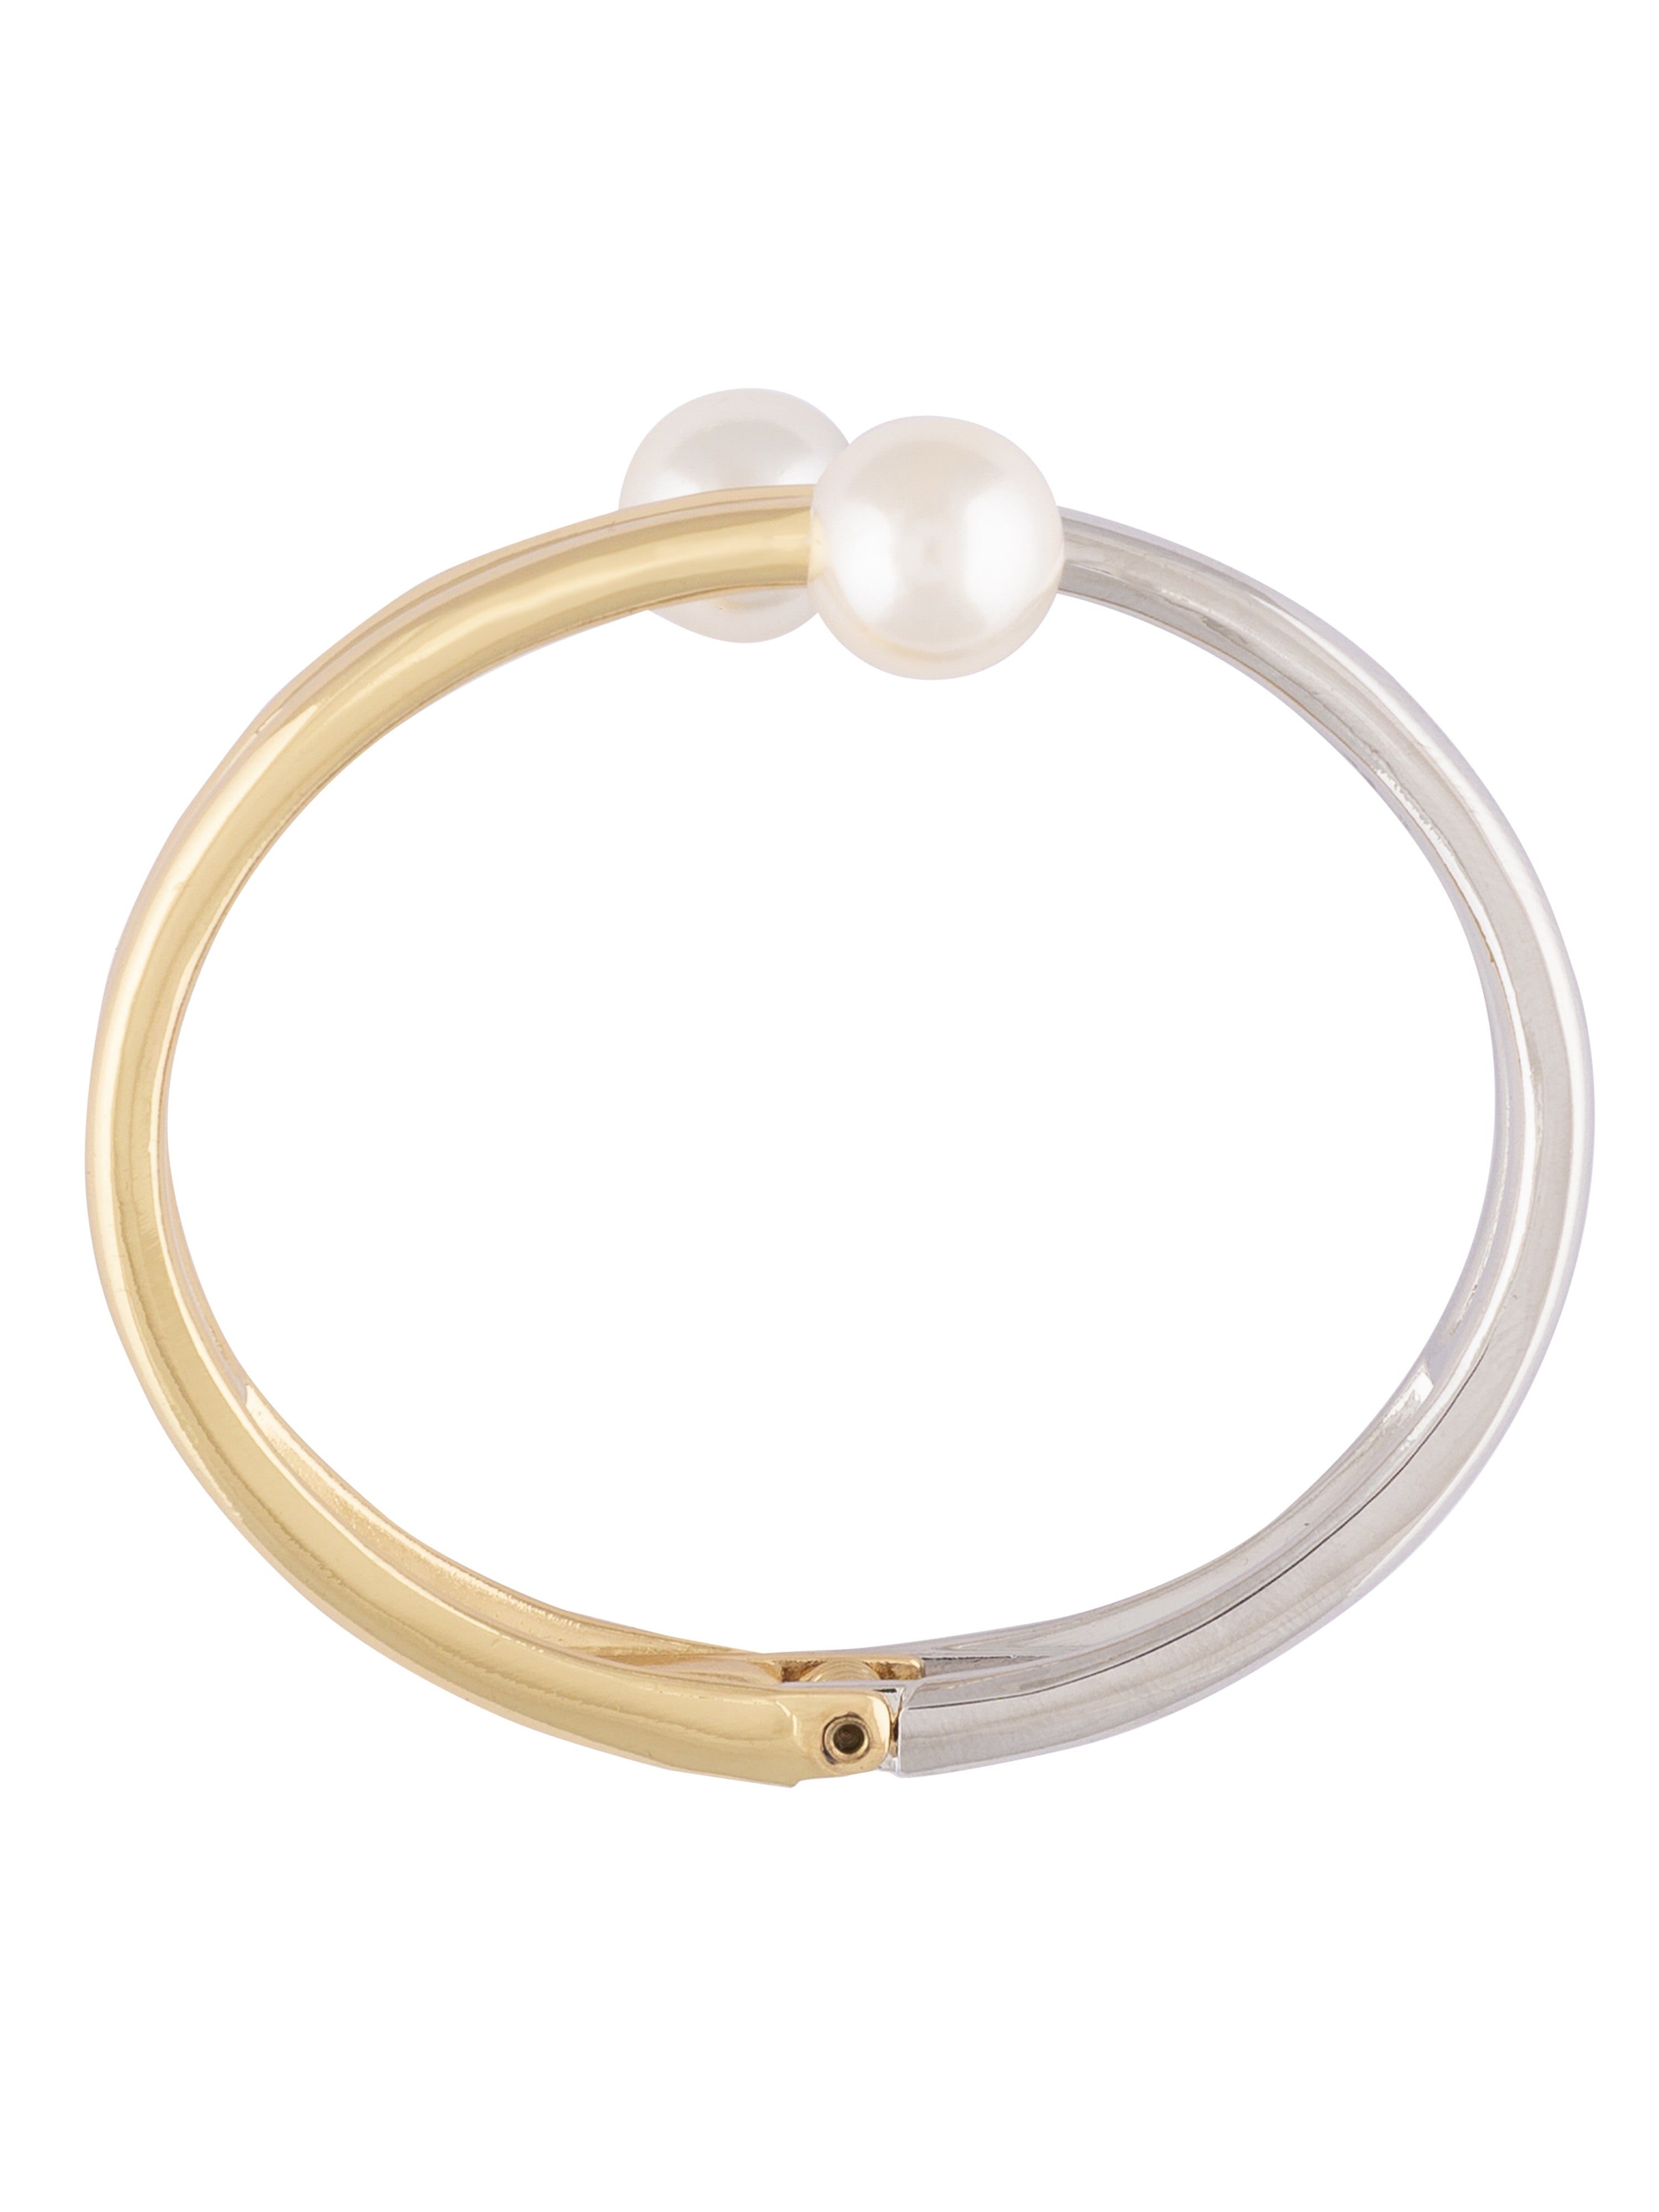 Pearl Silver Gold Bangle Bracelet-3